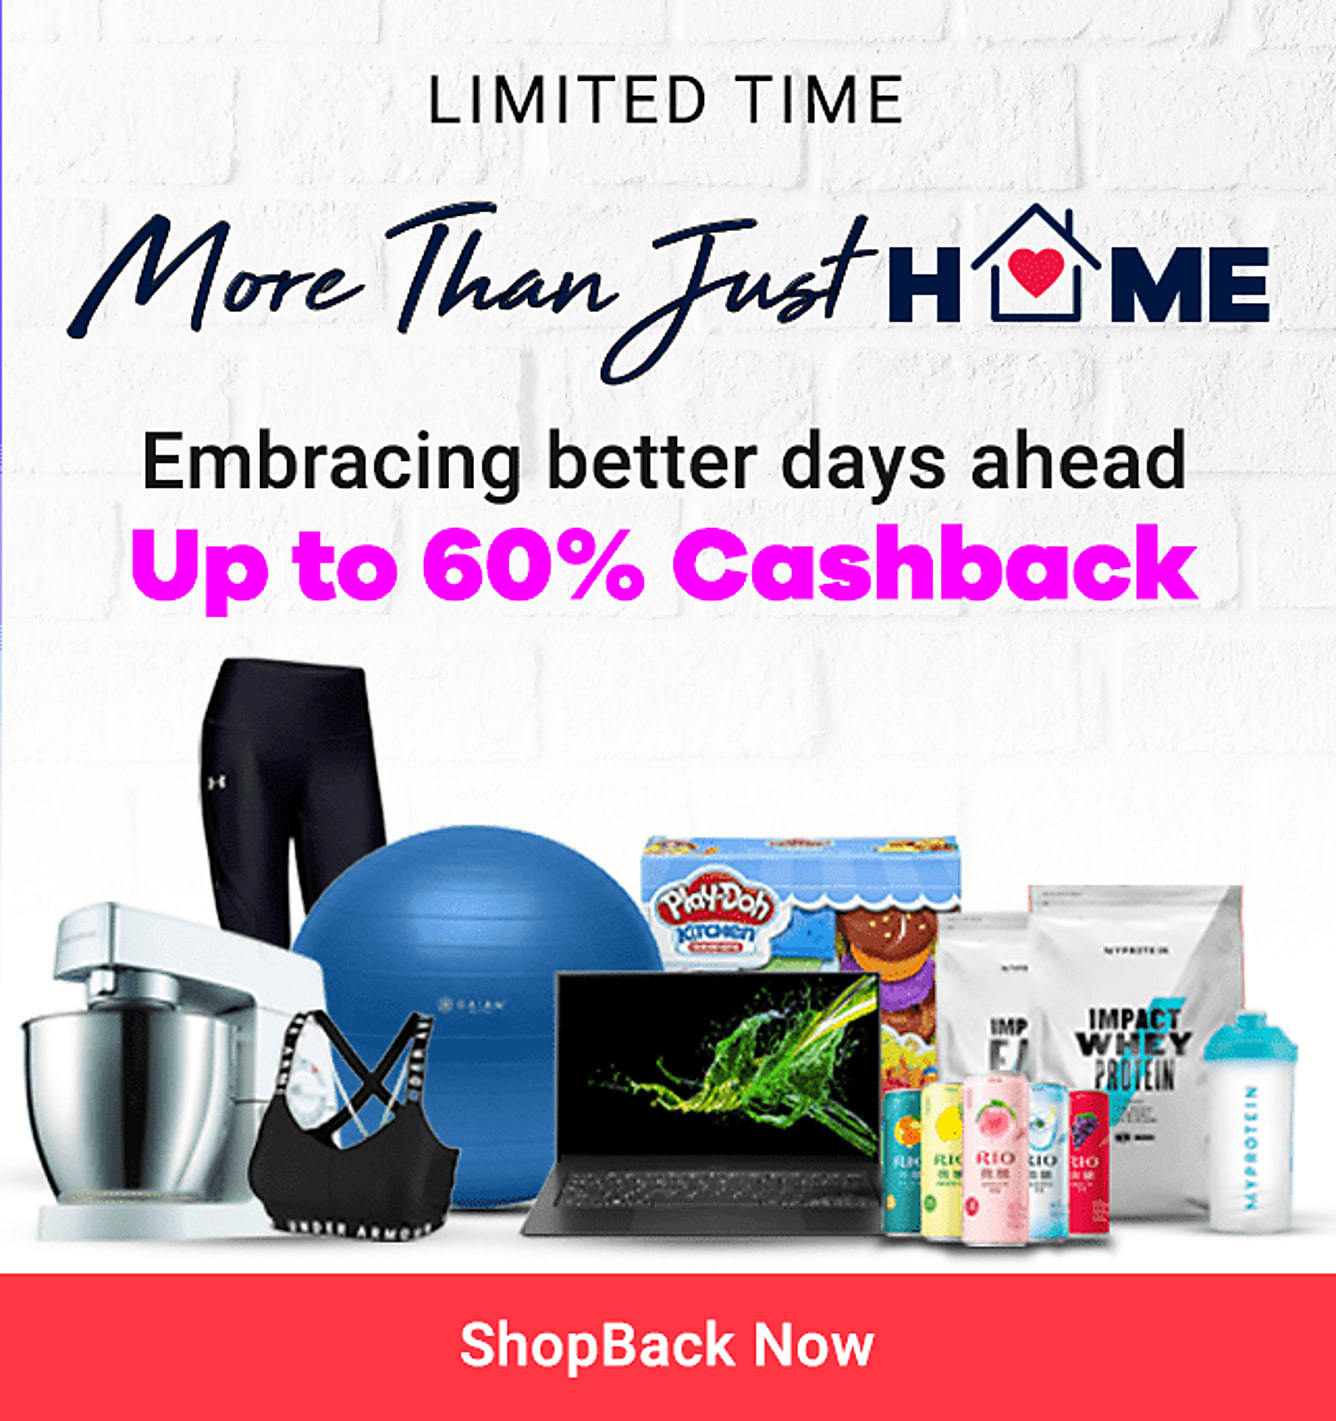 Stay Home Essentials Up to 60% Cashback